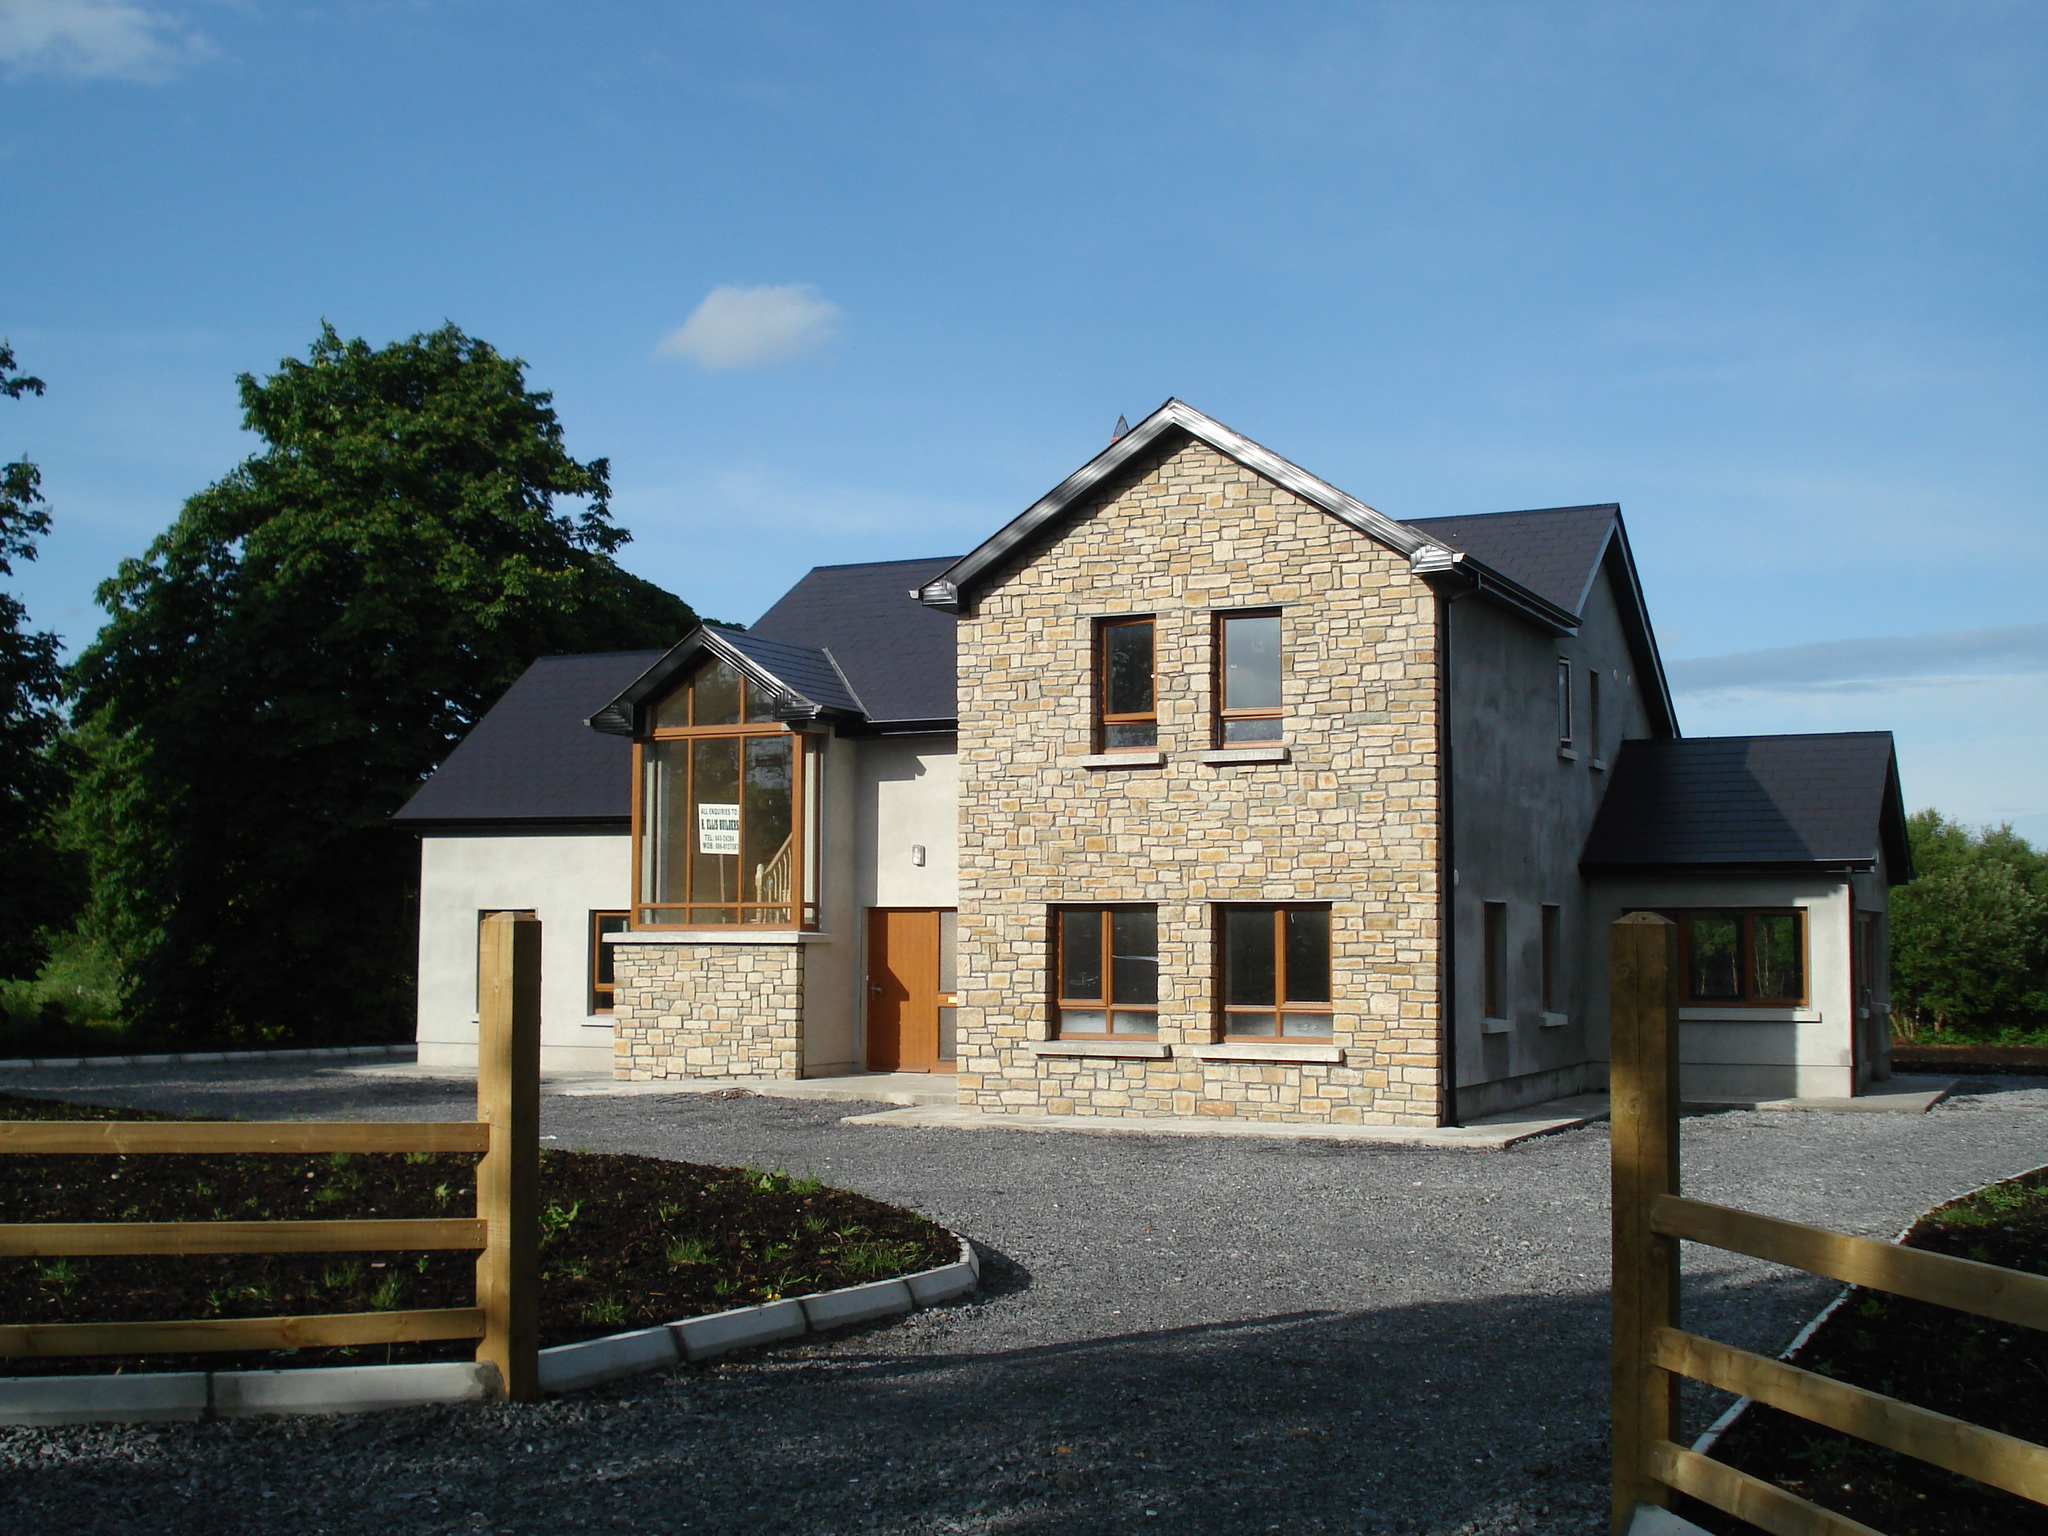 View Pictures And Photos For H Ellis Builders Lt Lt